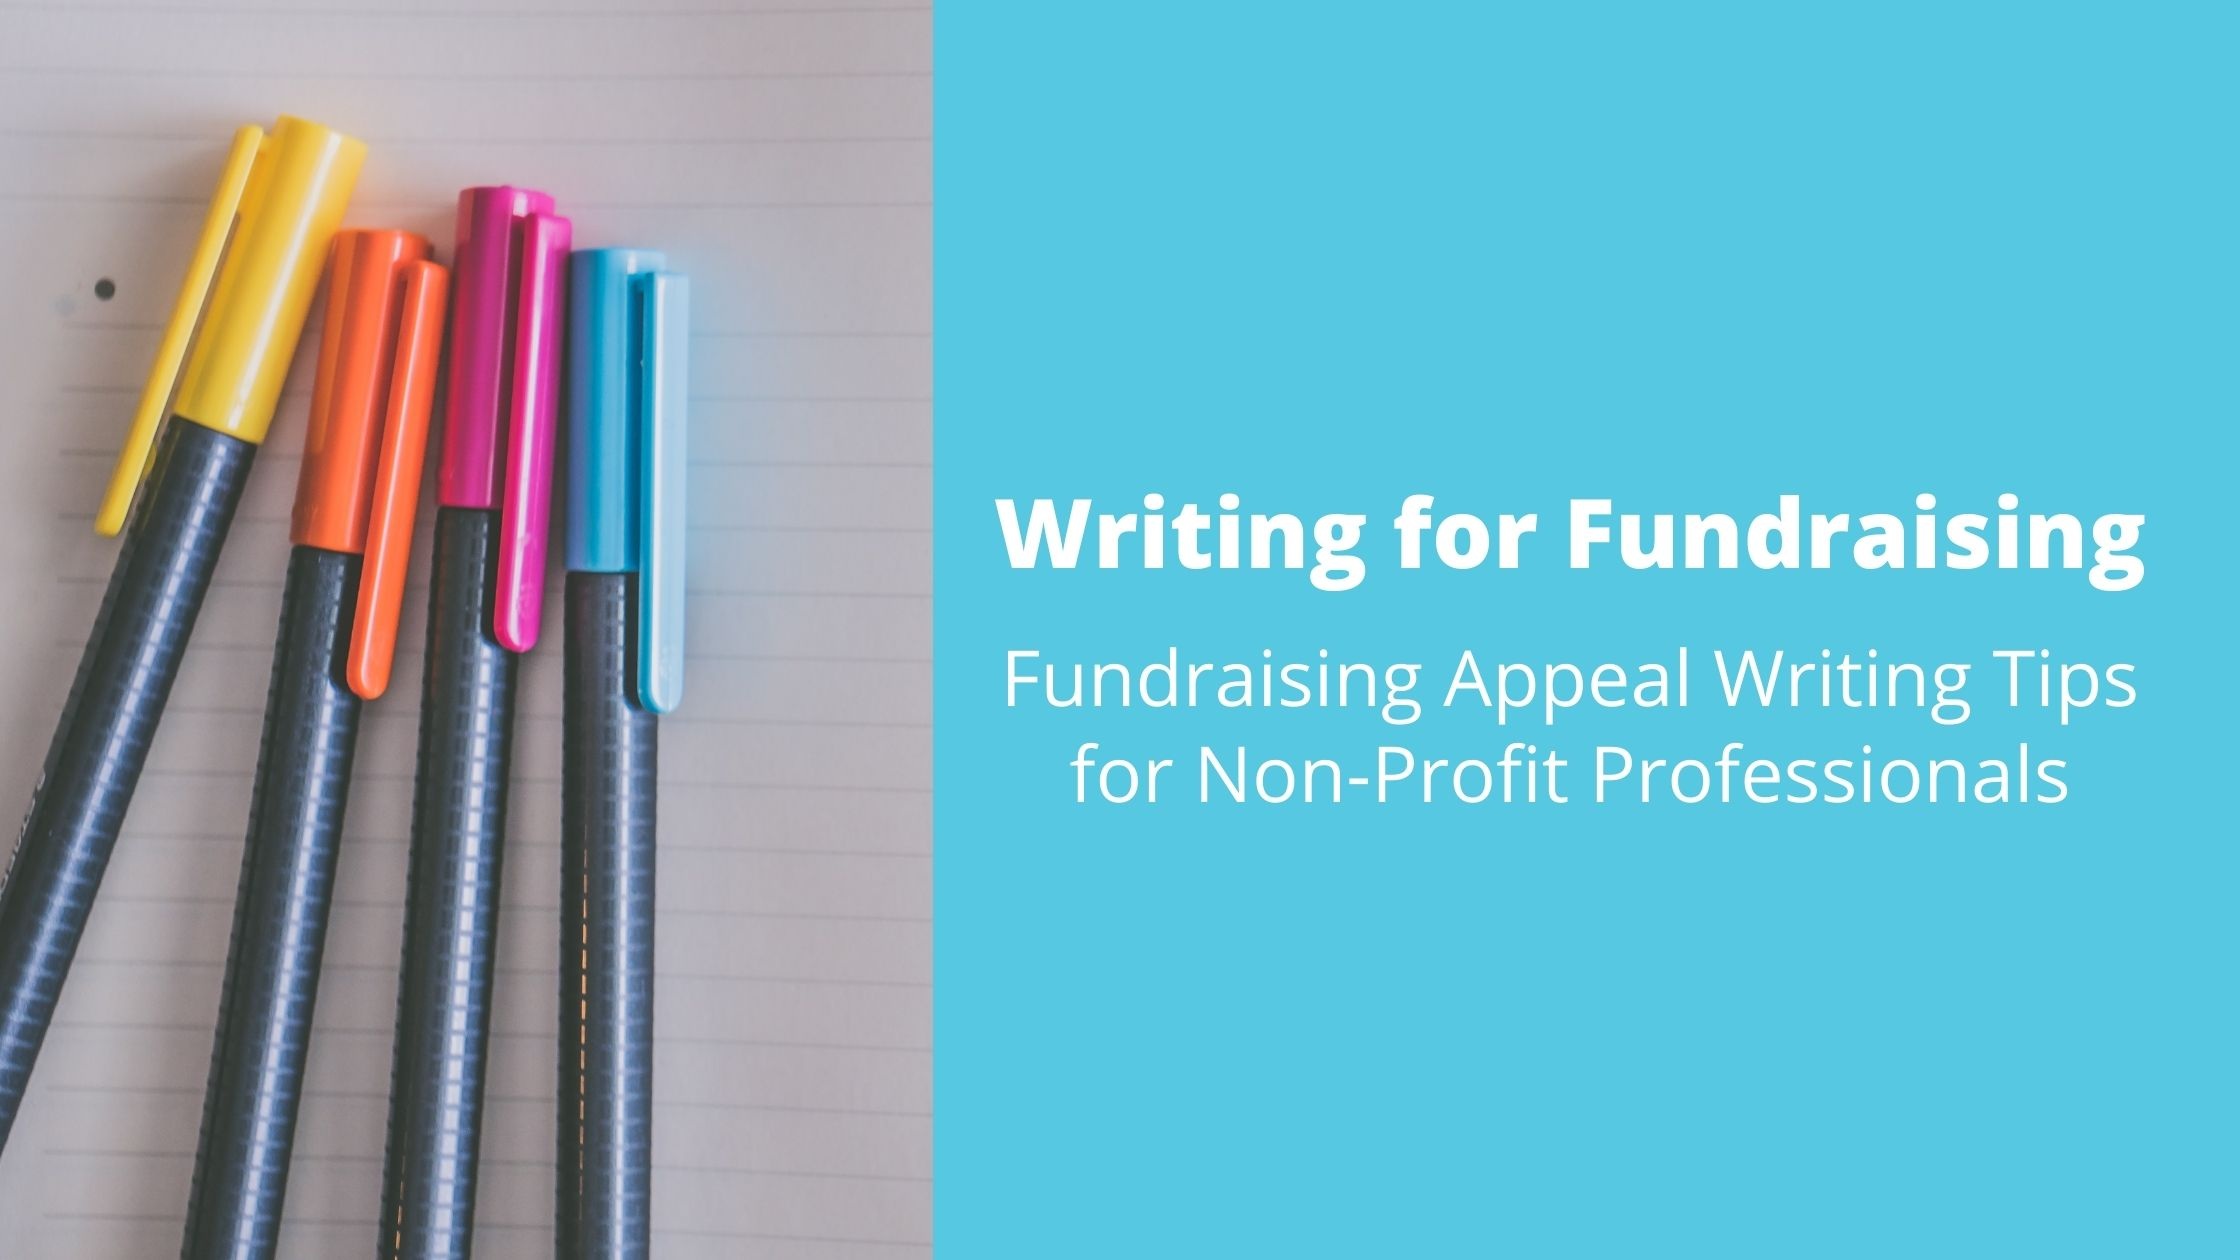 Writing for Fundraising: Fundraising Appeal Writing Tips for Non-Profit Professionals